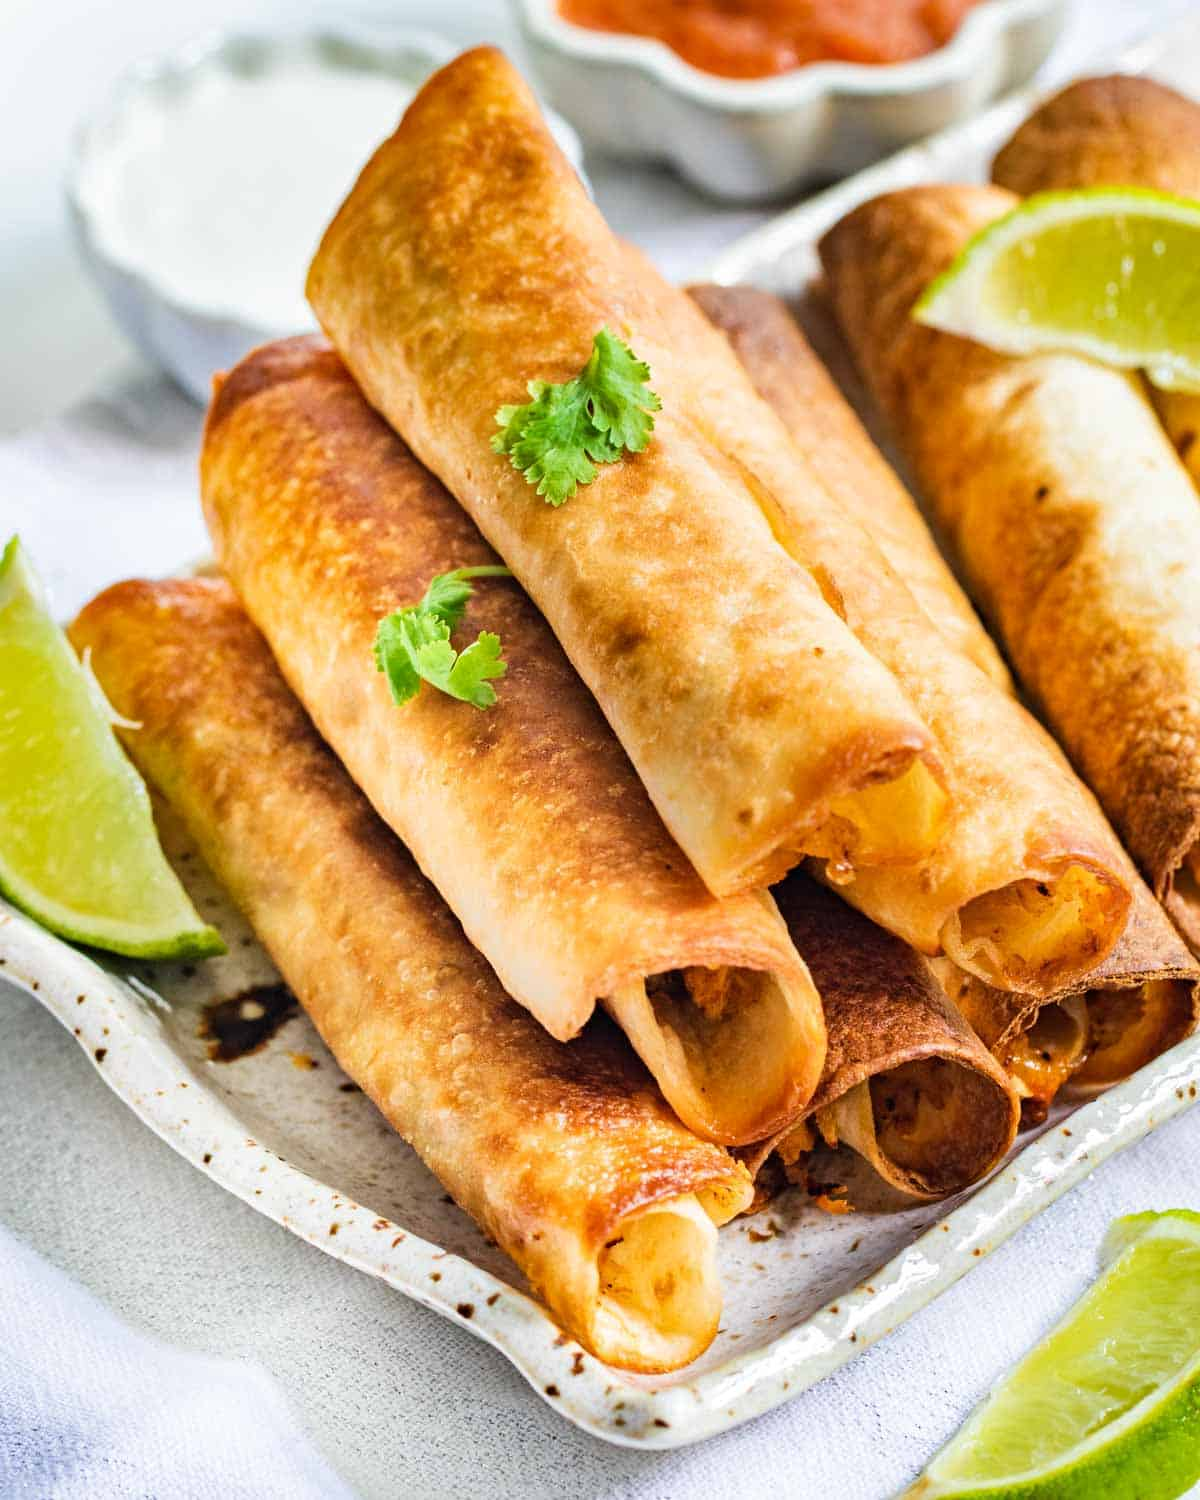 chicken taquitos stacked on top of each other on a serving platter.